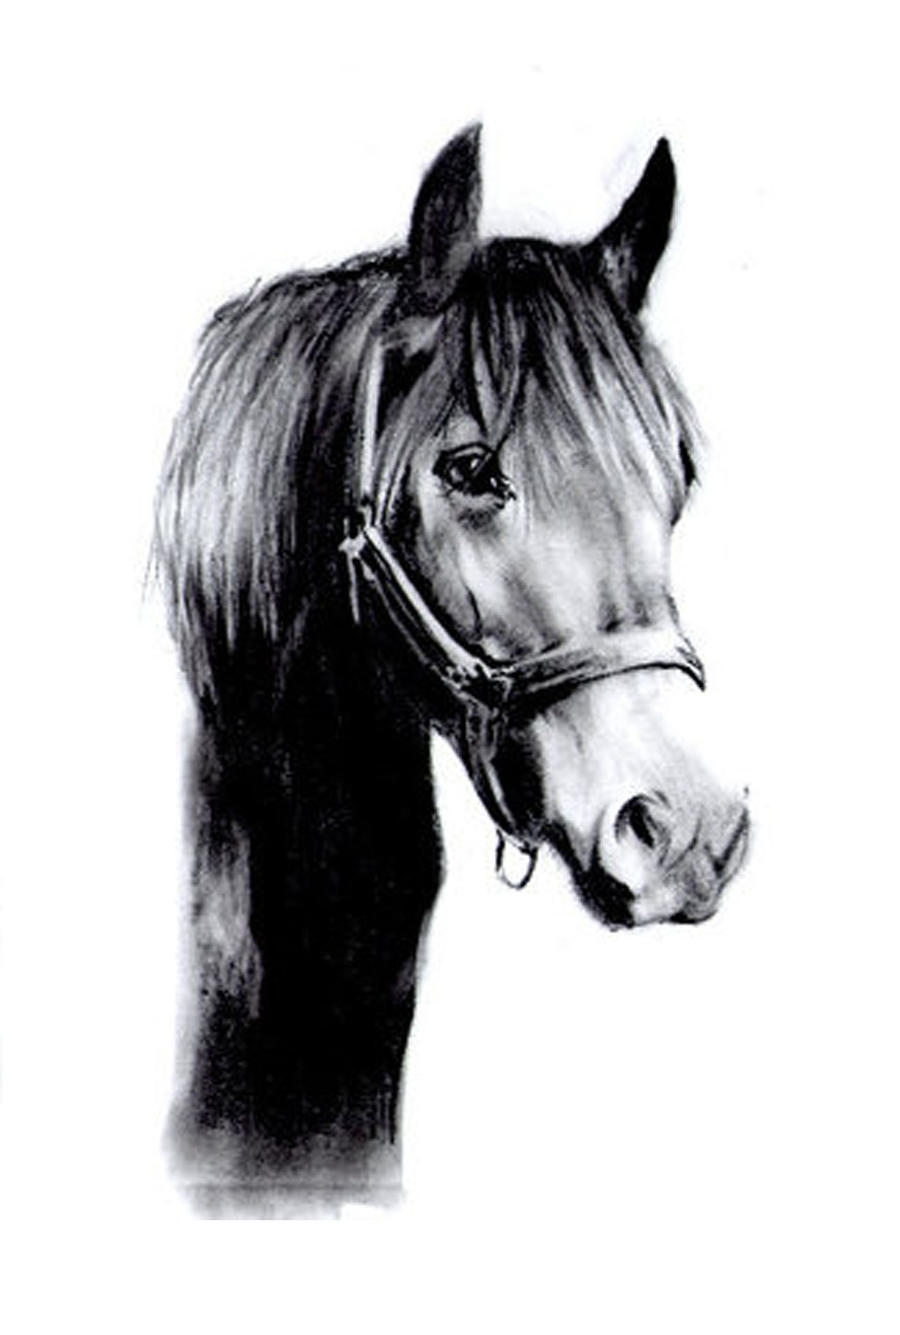 Black Horse Drawing By Slippy88 On DeviantArt